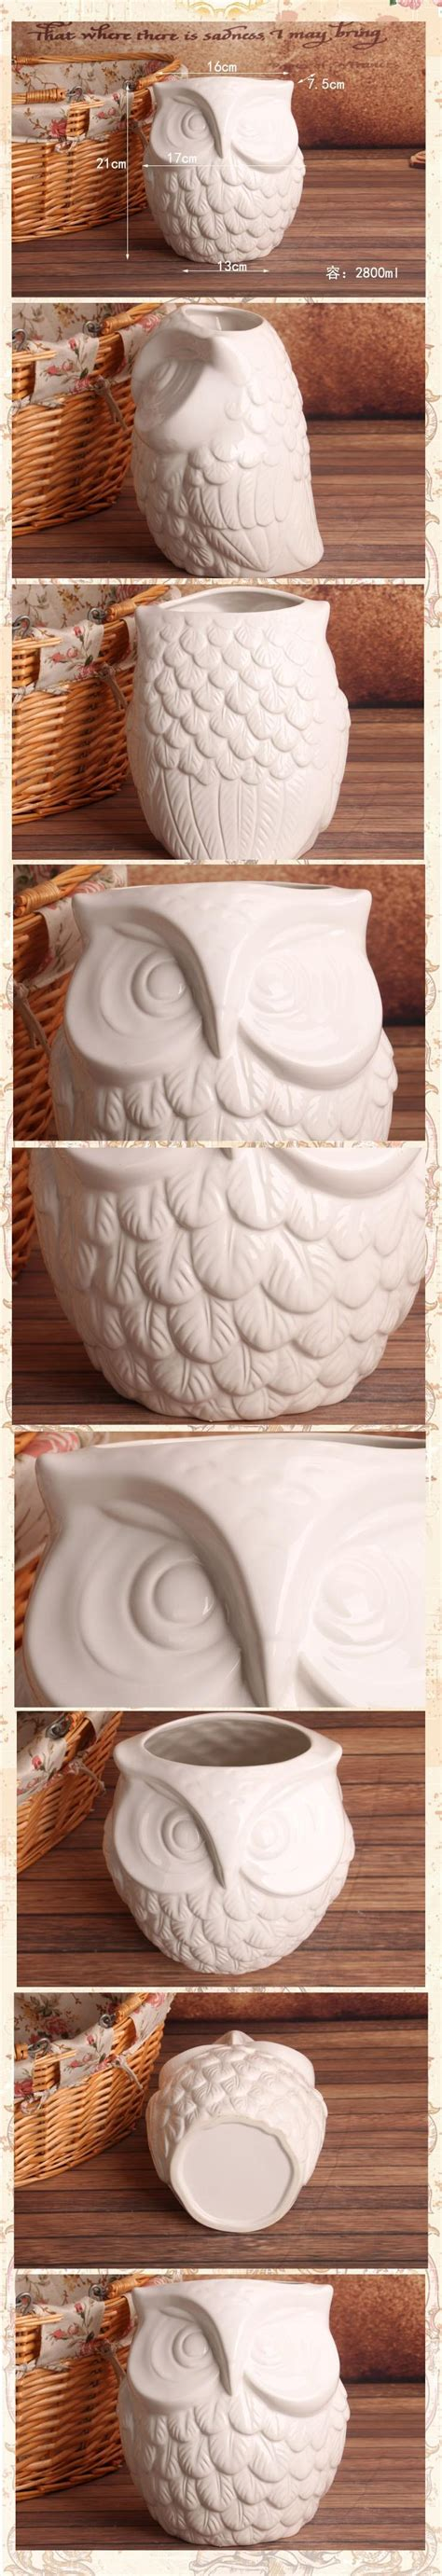 owl decor for home european style coruja ceramica owl home decor owl pot